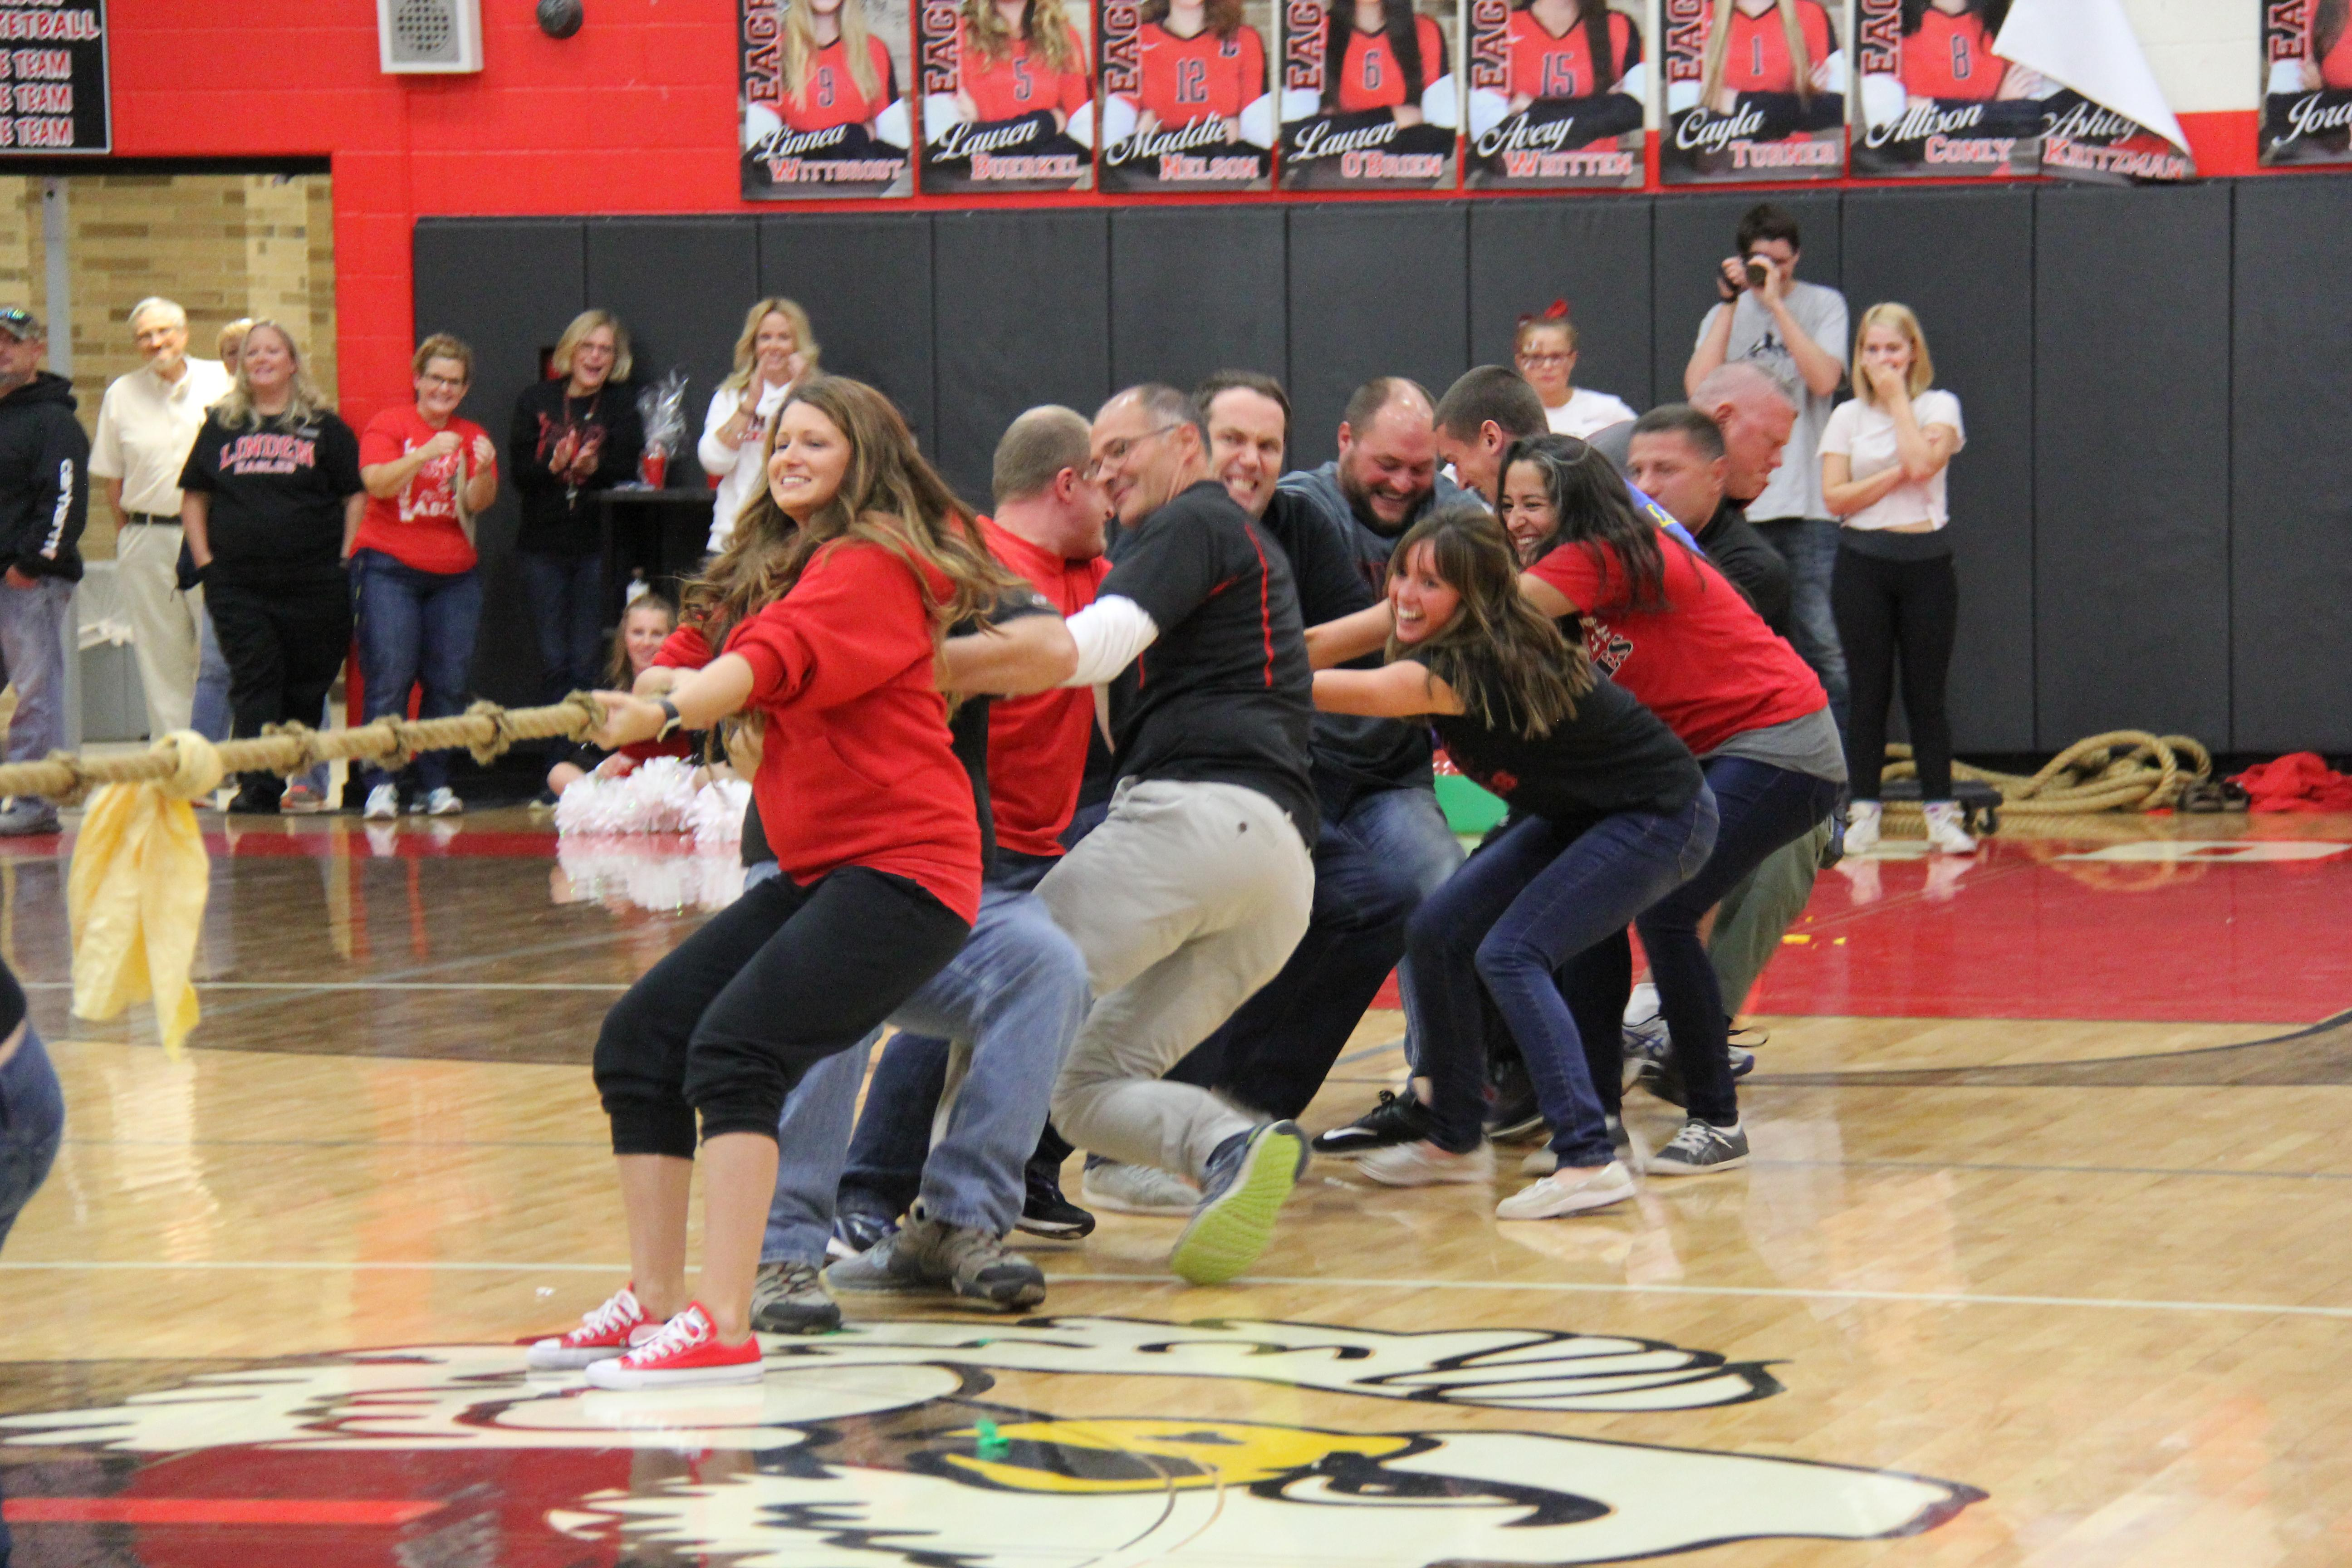 Teachers participating in a tug-of-war contest